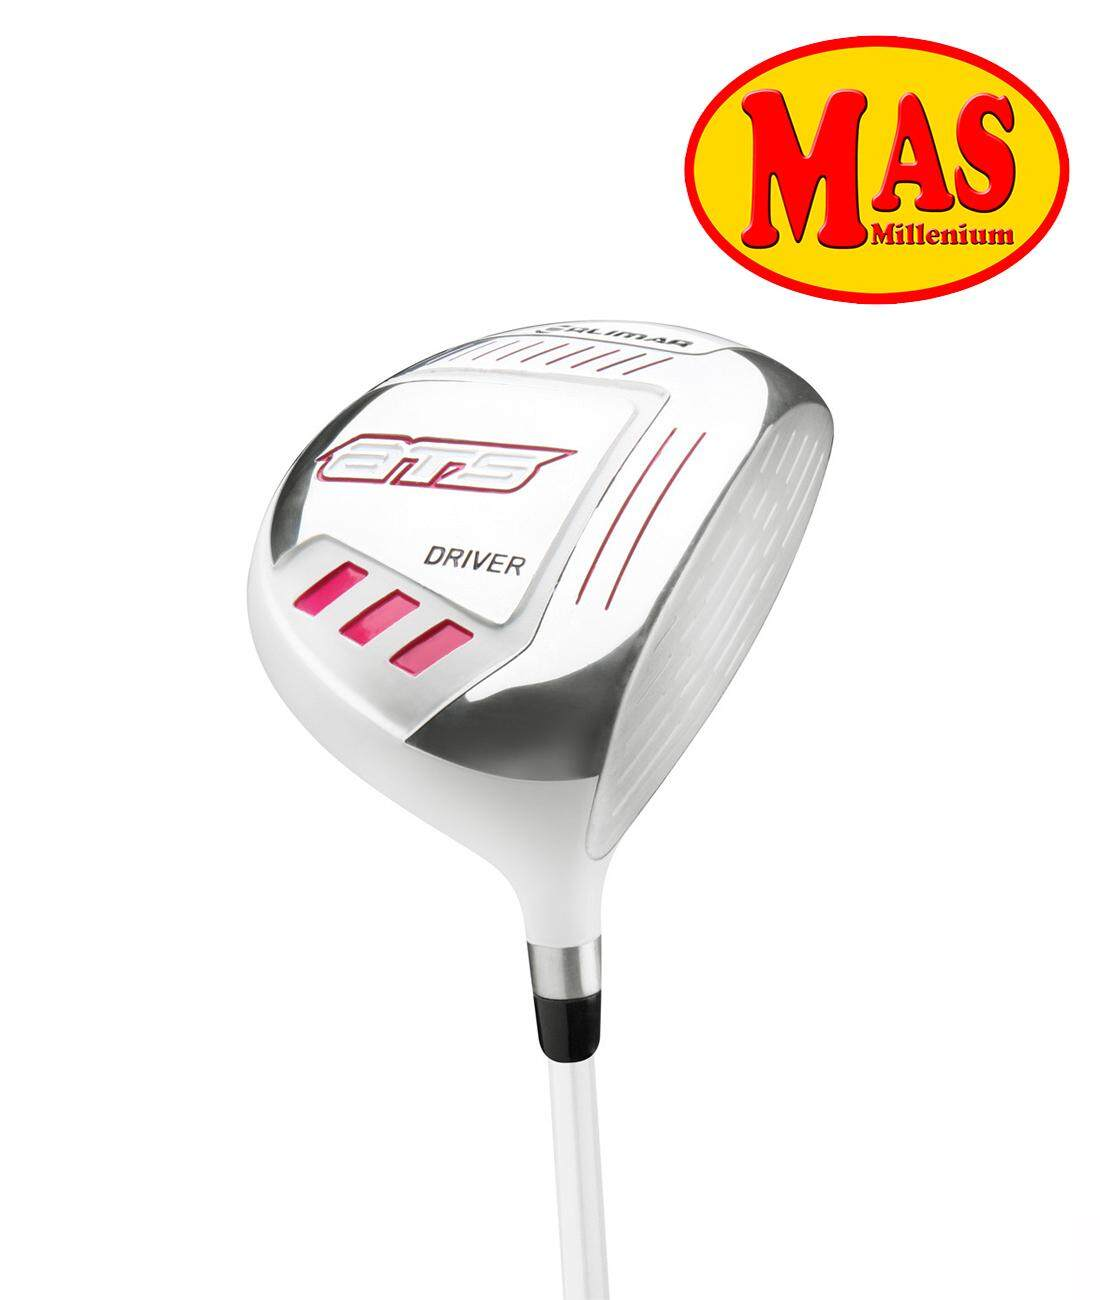 Orlimar Ats Junior Girls Pink Series Driver (rh Ages 5-8) By Mas Millenium Golf.